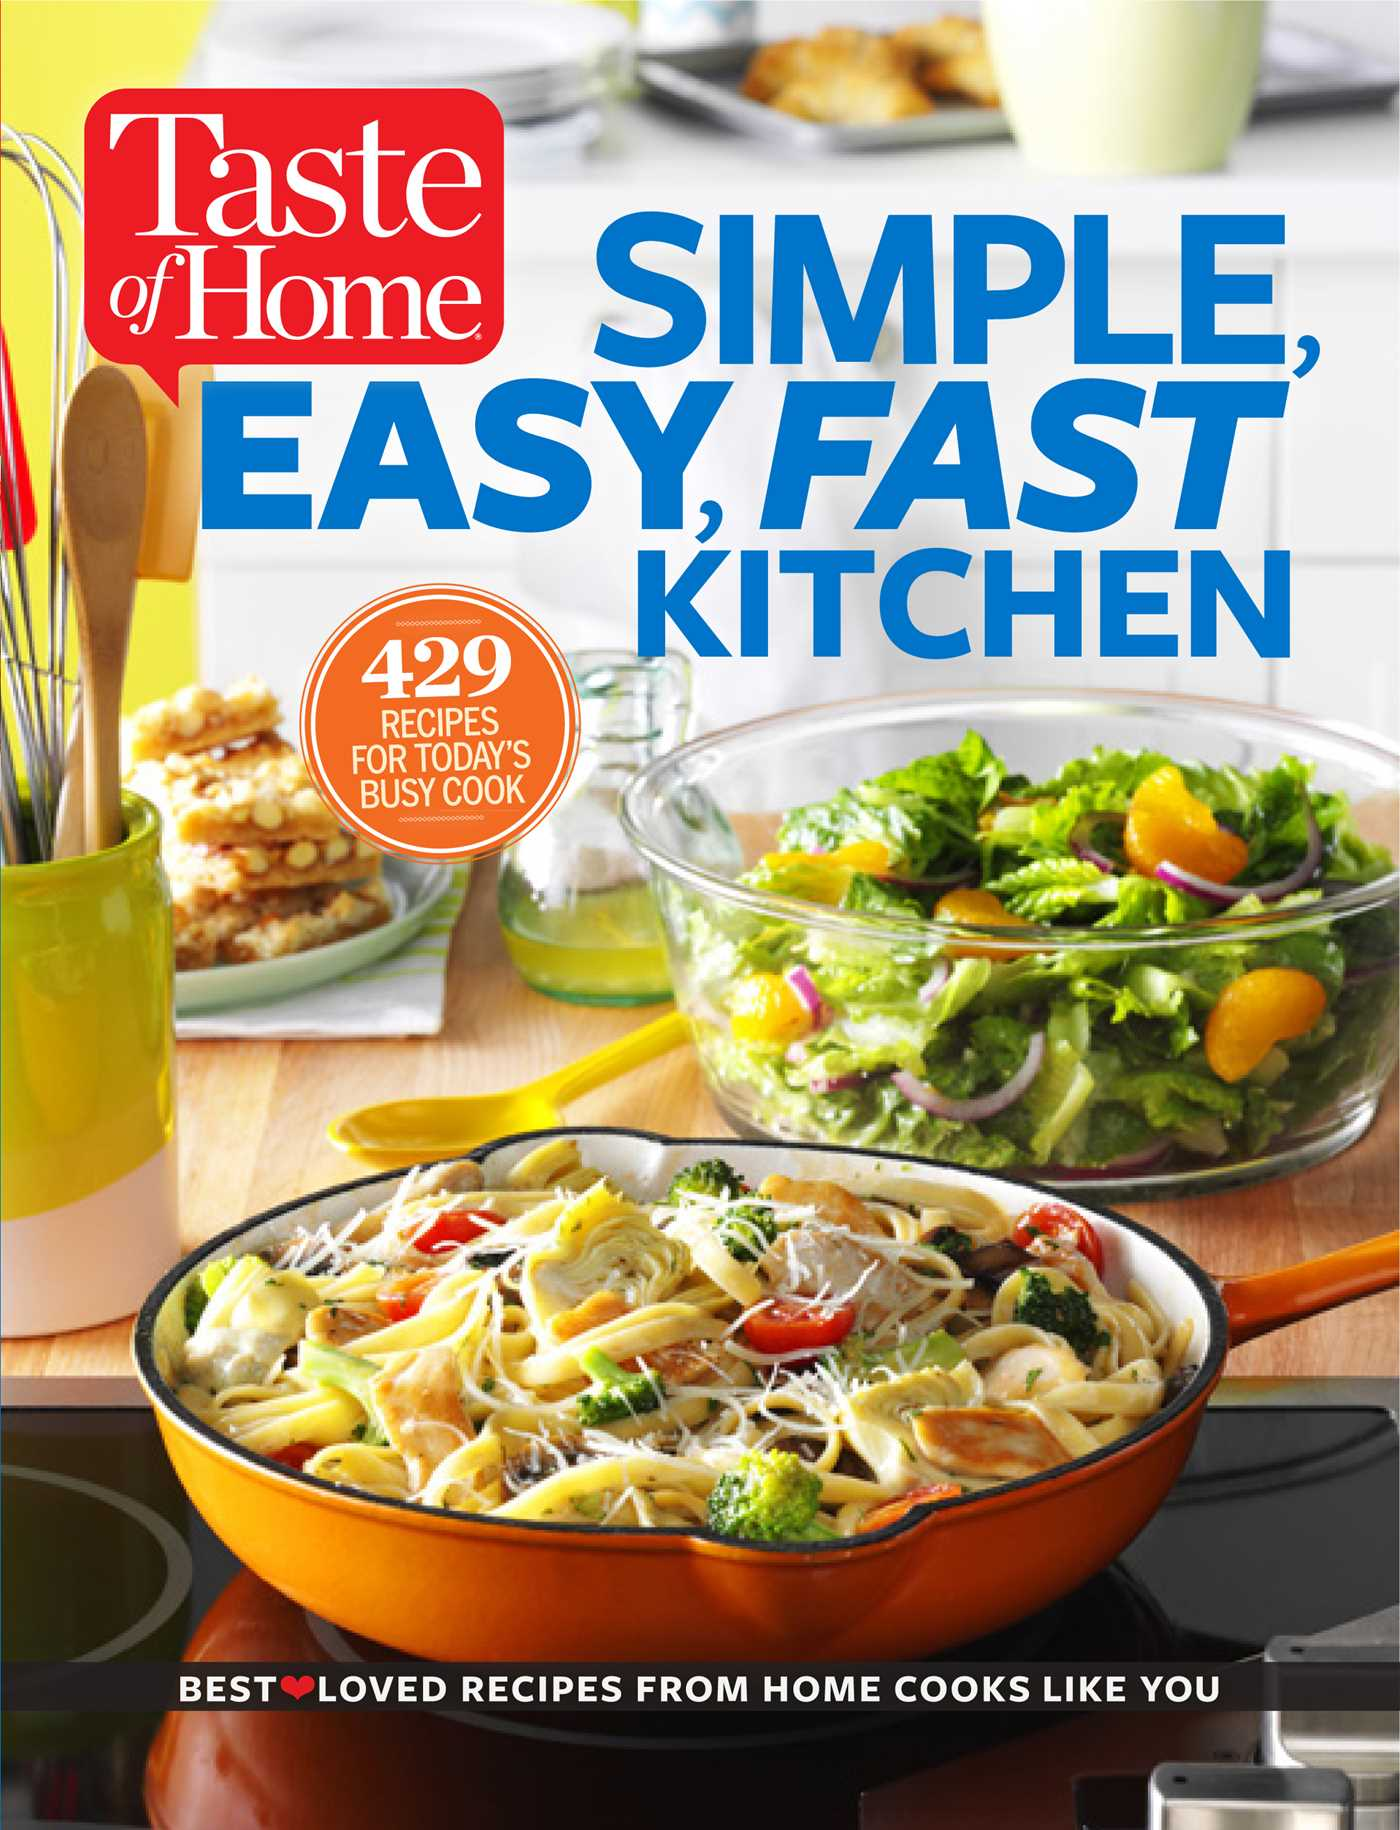 Taste of home the simple easy fast kitchen 9781617653629 hr